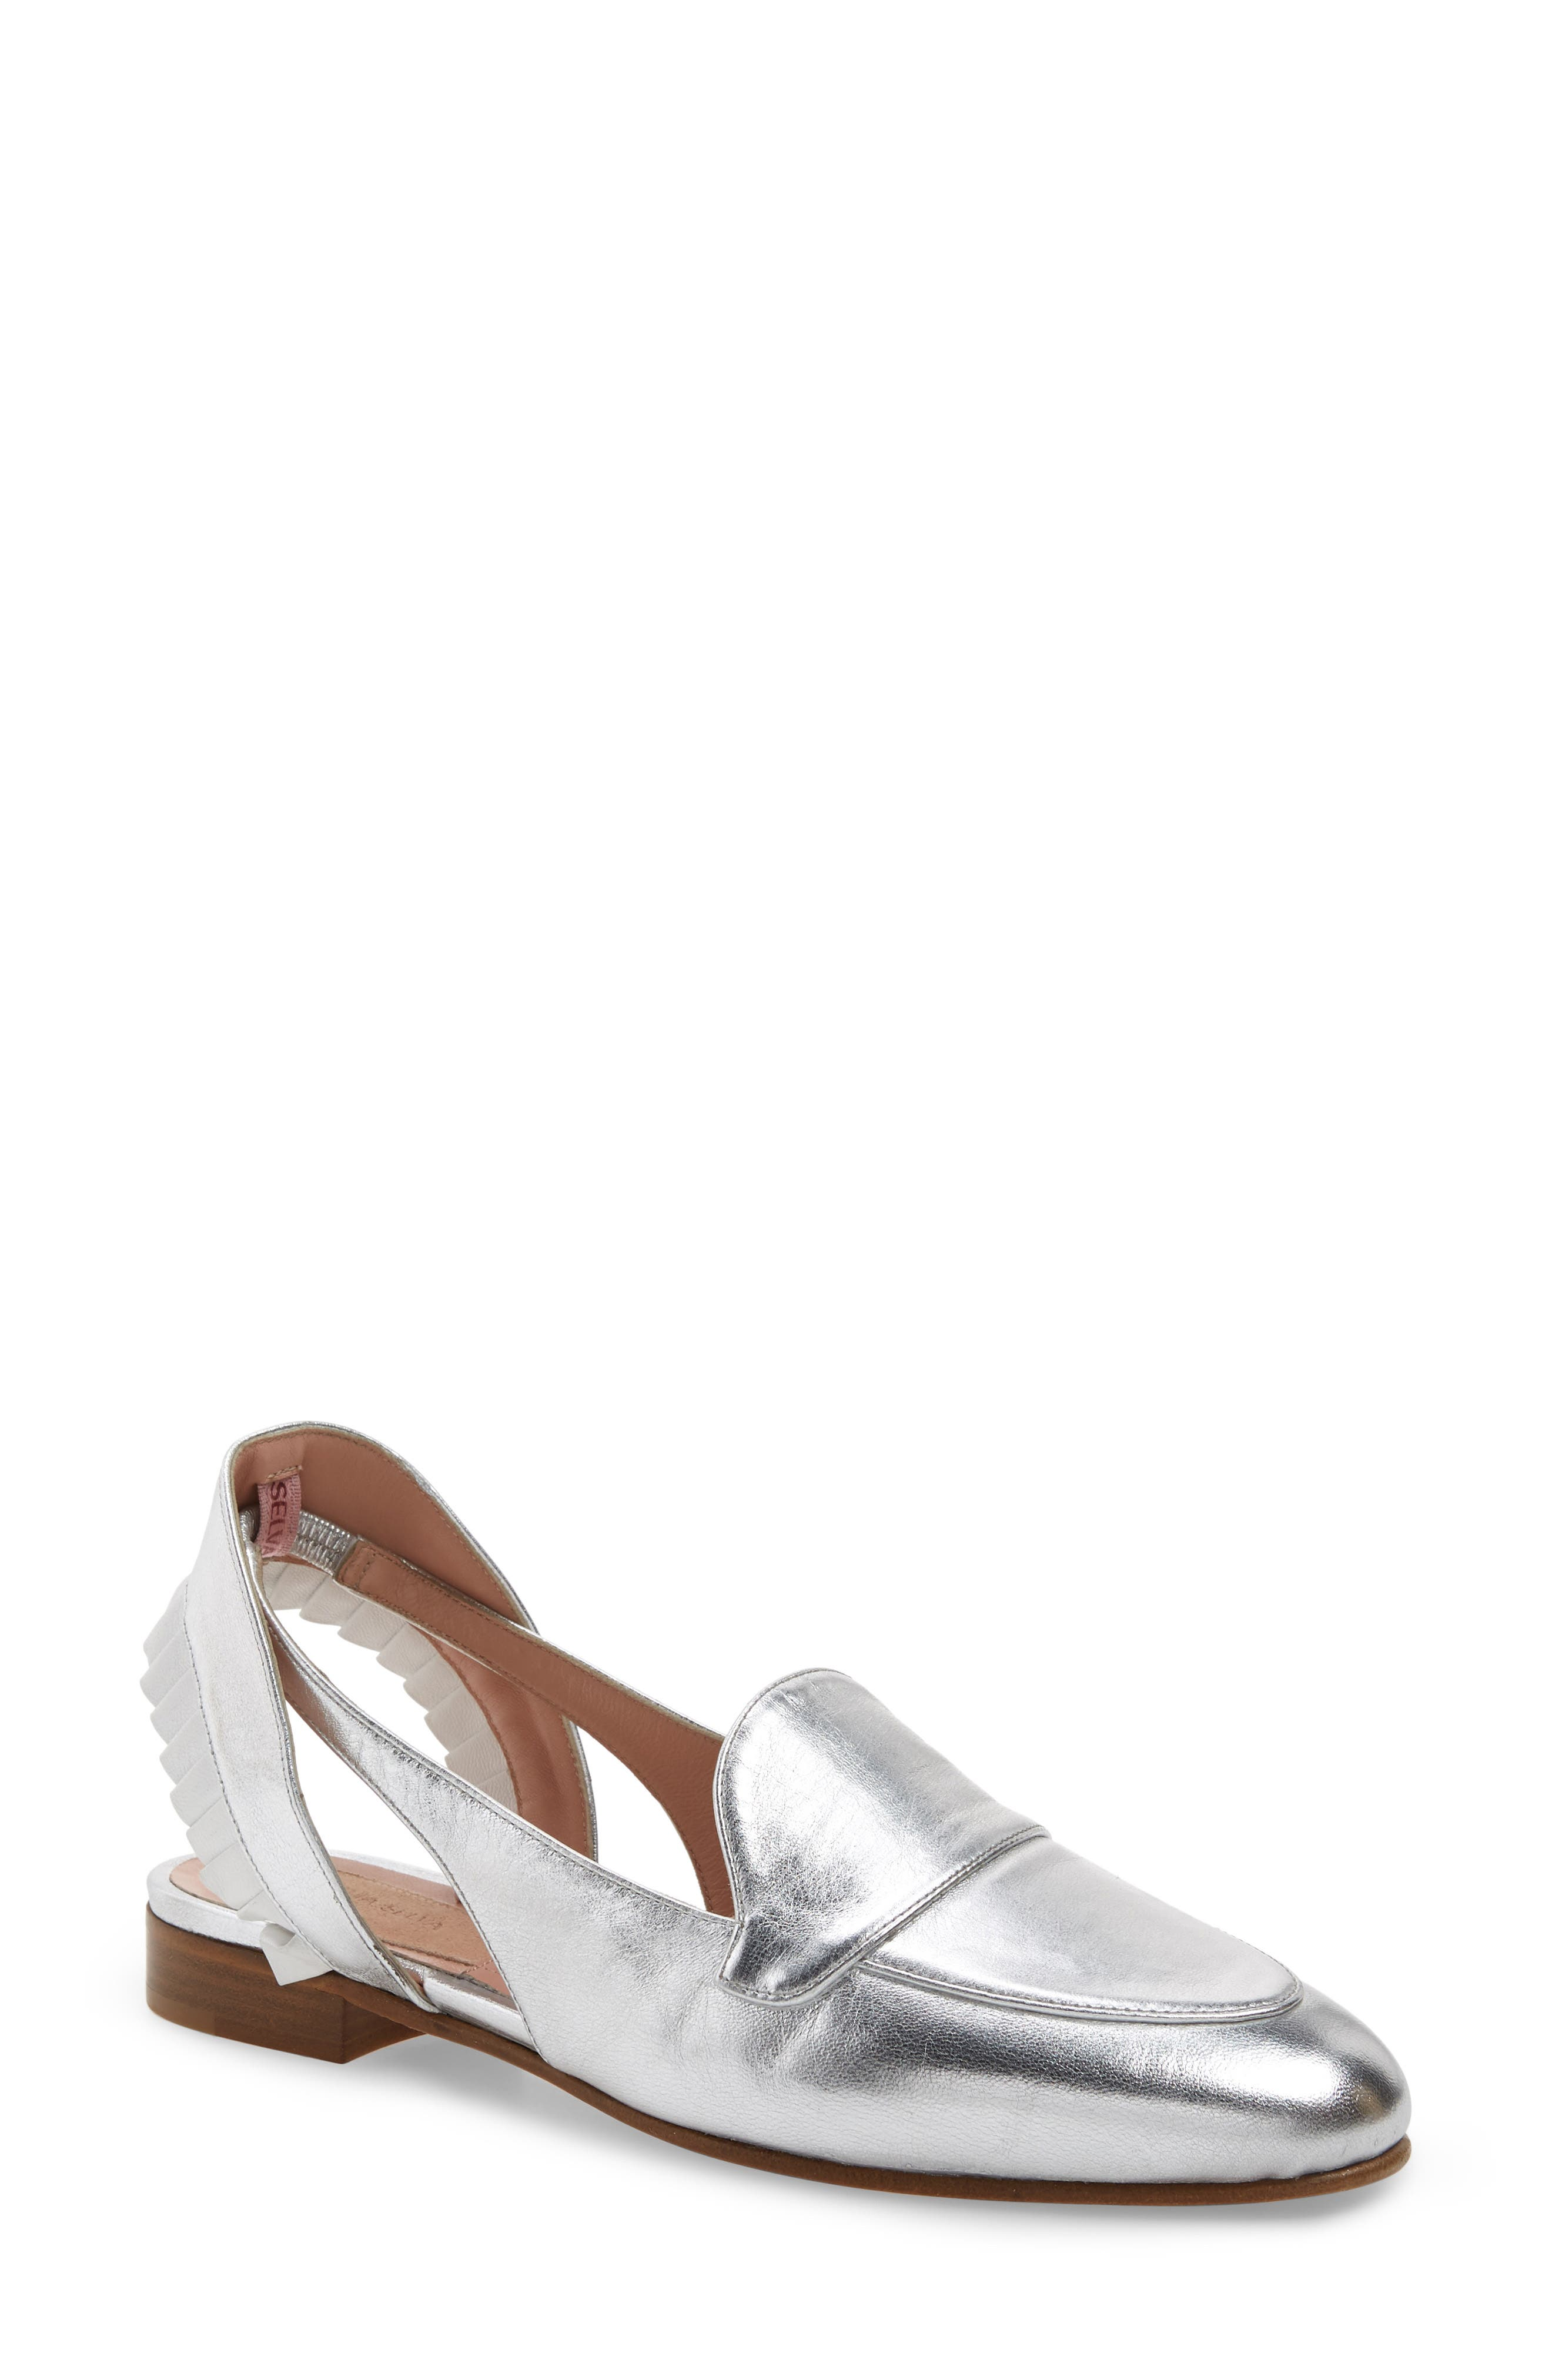 Dahlia Selva Gulity Pleat Loafer - Metallic